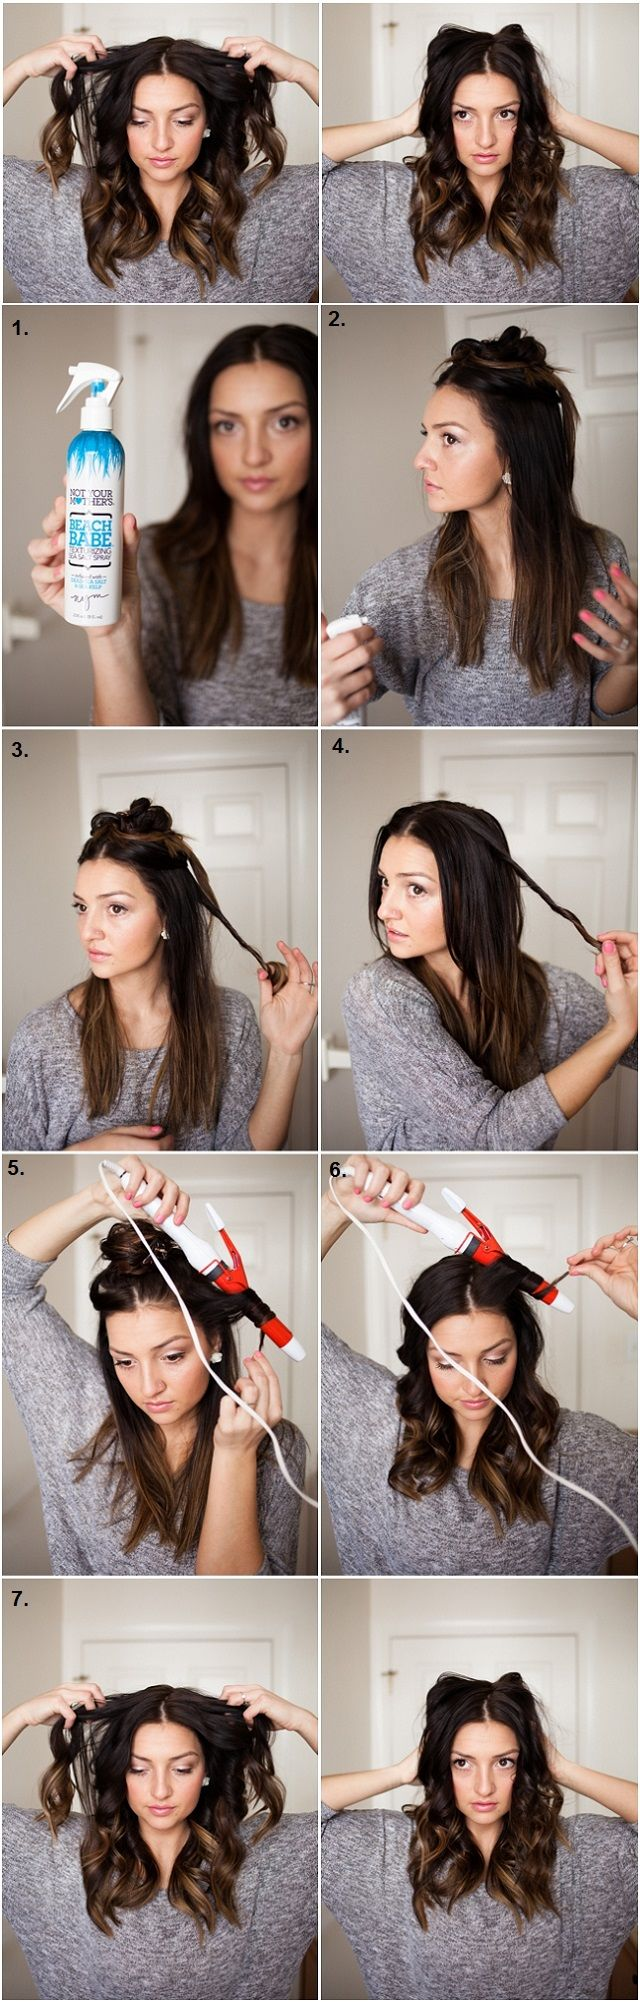 Casual curls are amazing for when you don't want to look too prepared, when going out, but still want to have a chic appearance. Easy and quick to make, they